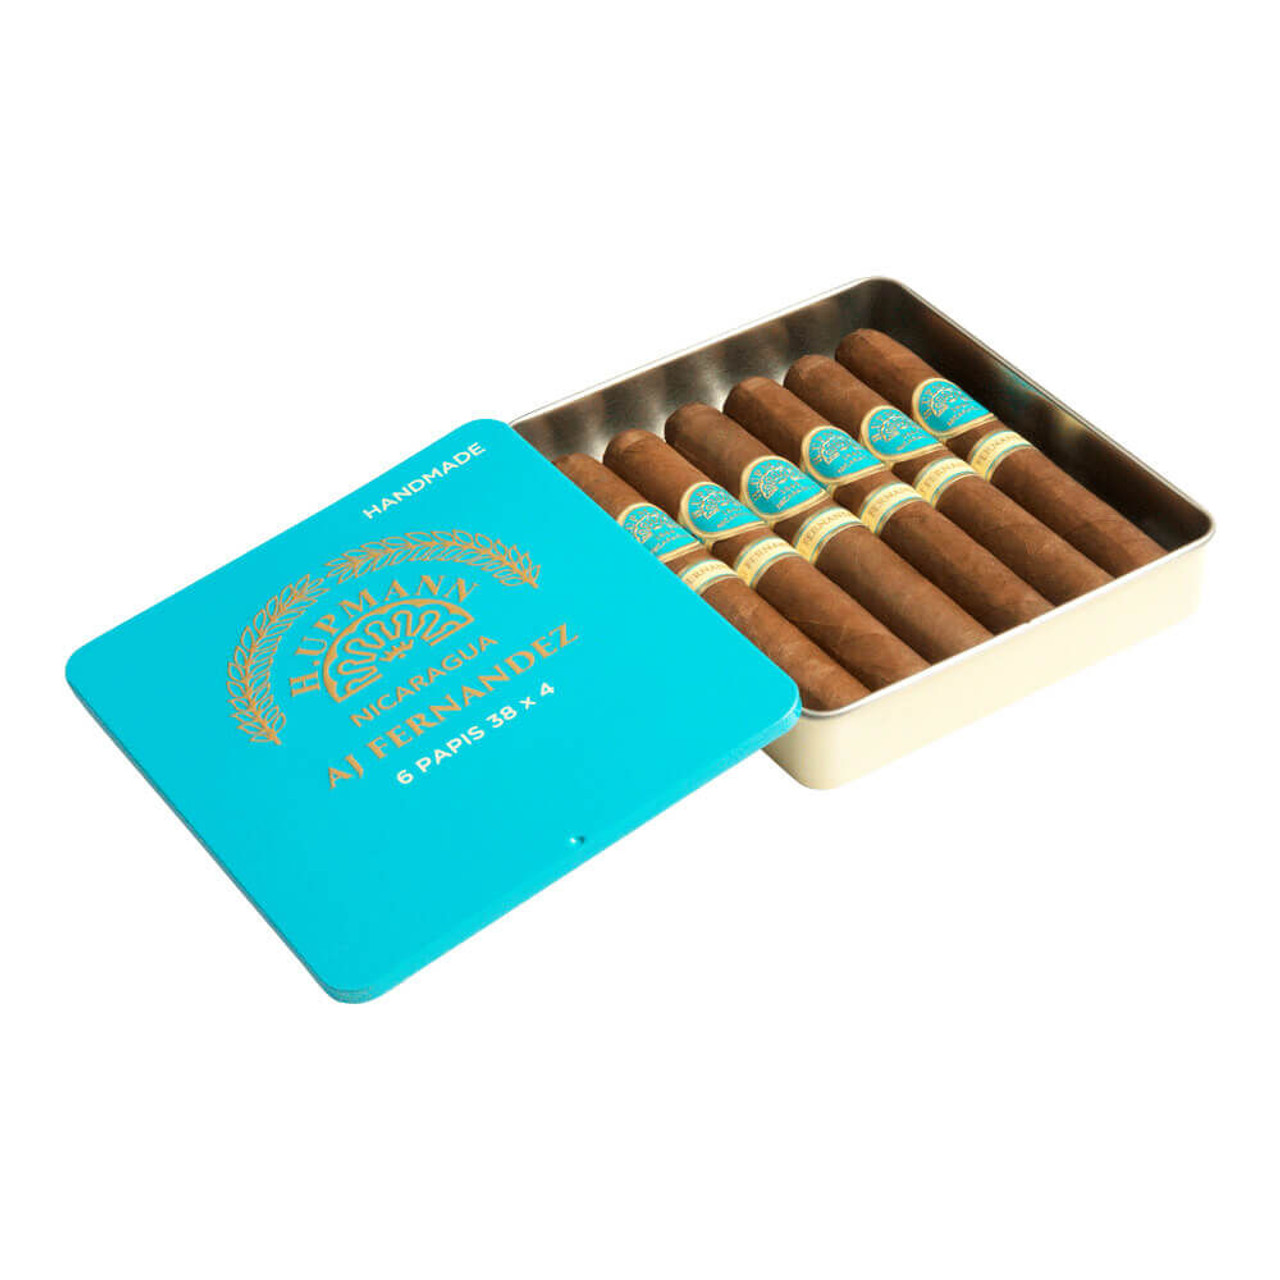 H. Upmann by AJ Fernandez Finca La Lilia Cigars - 6 x 60 (Box of 20)